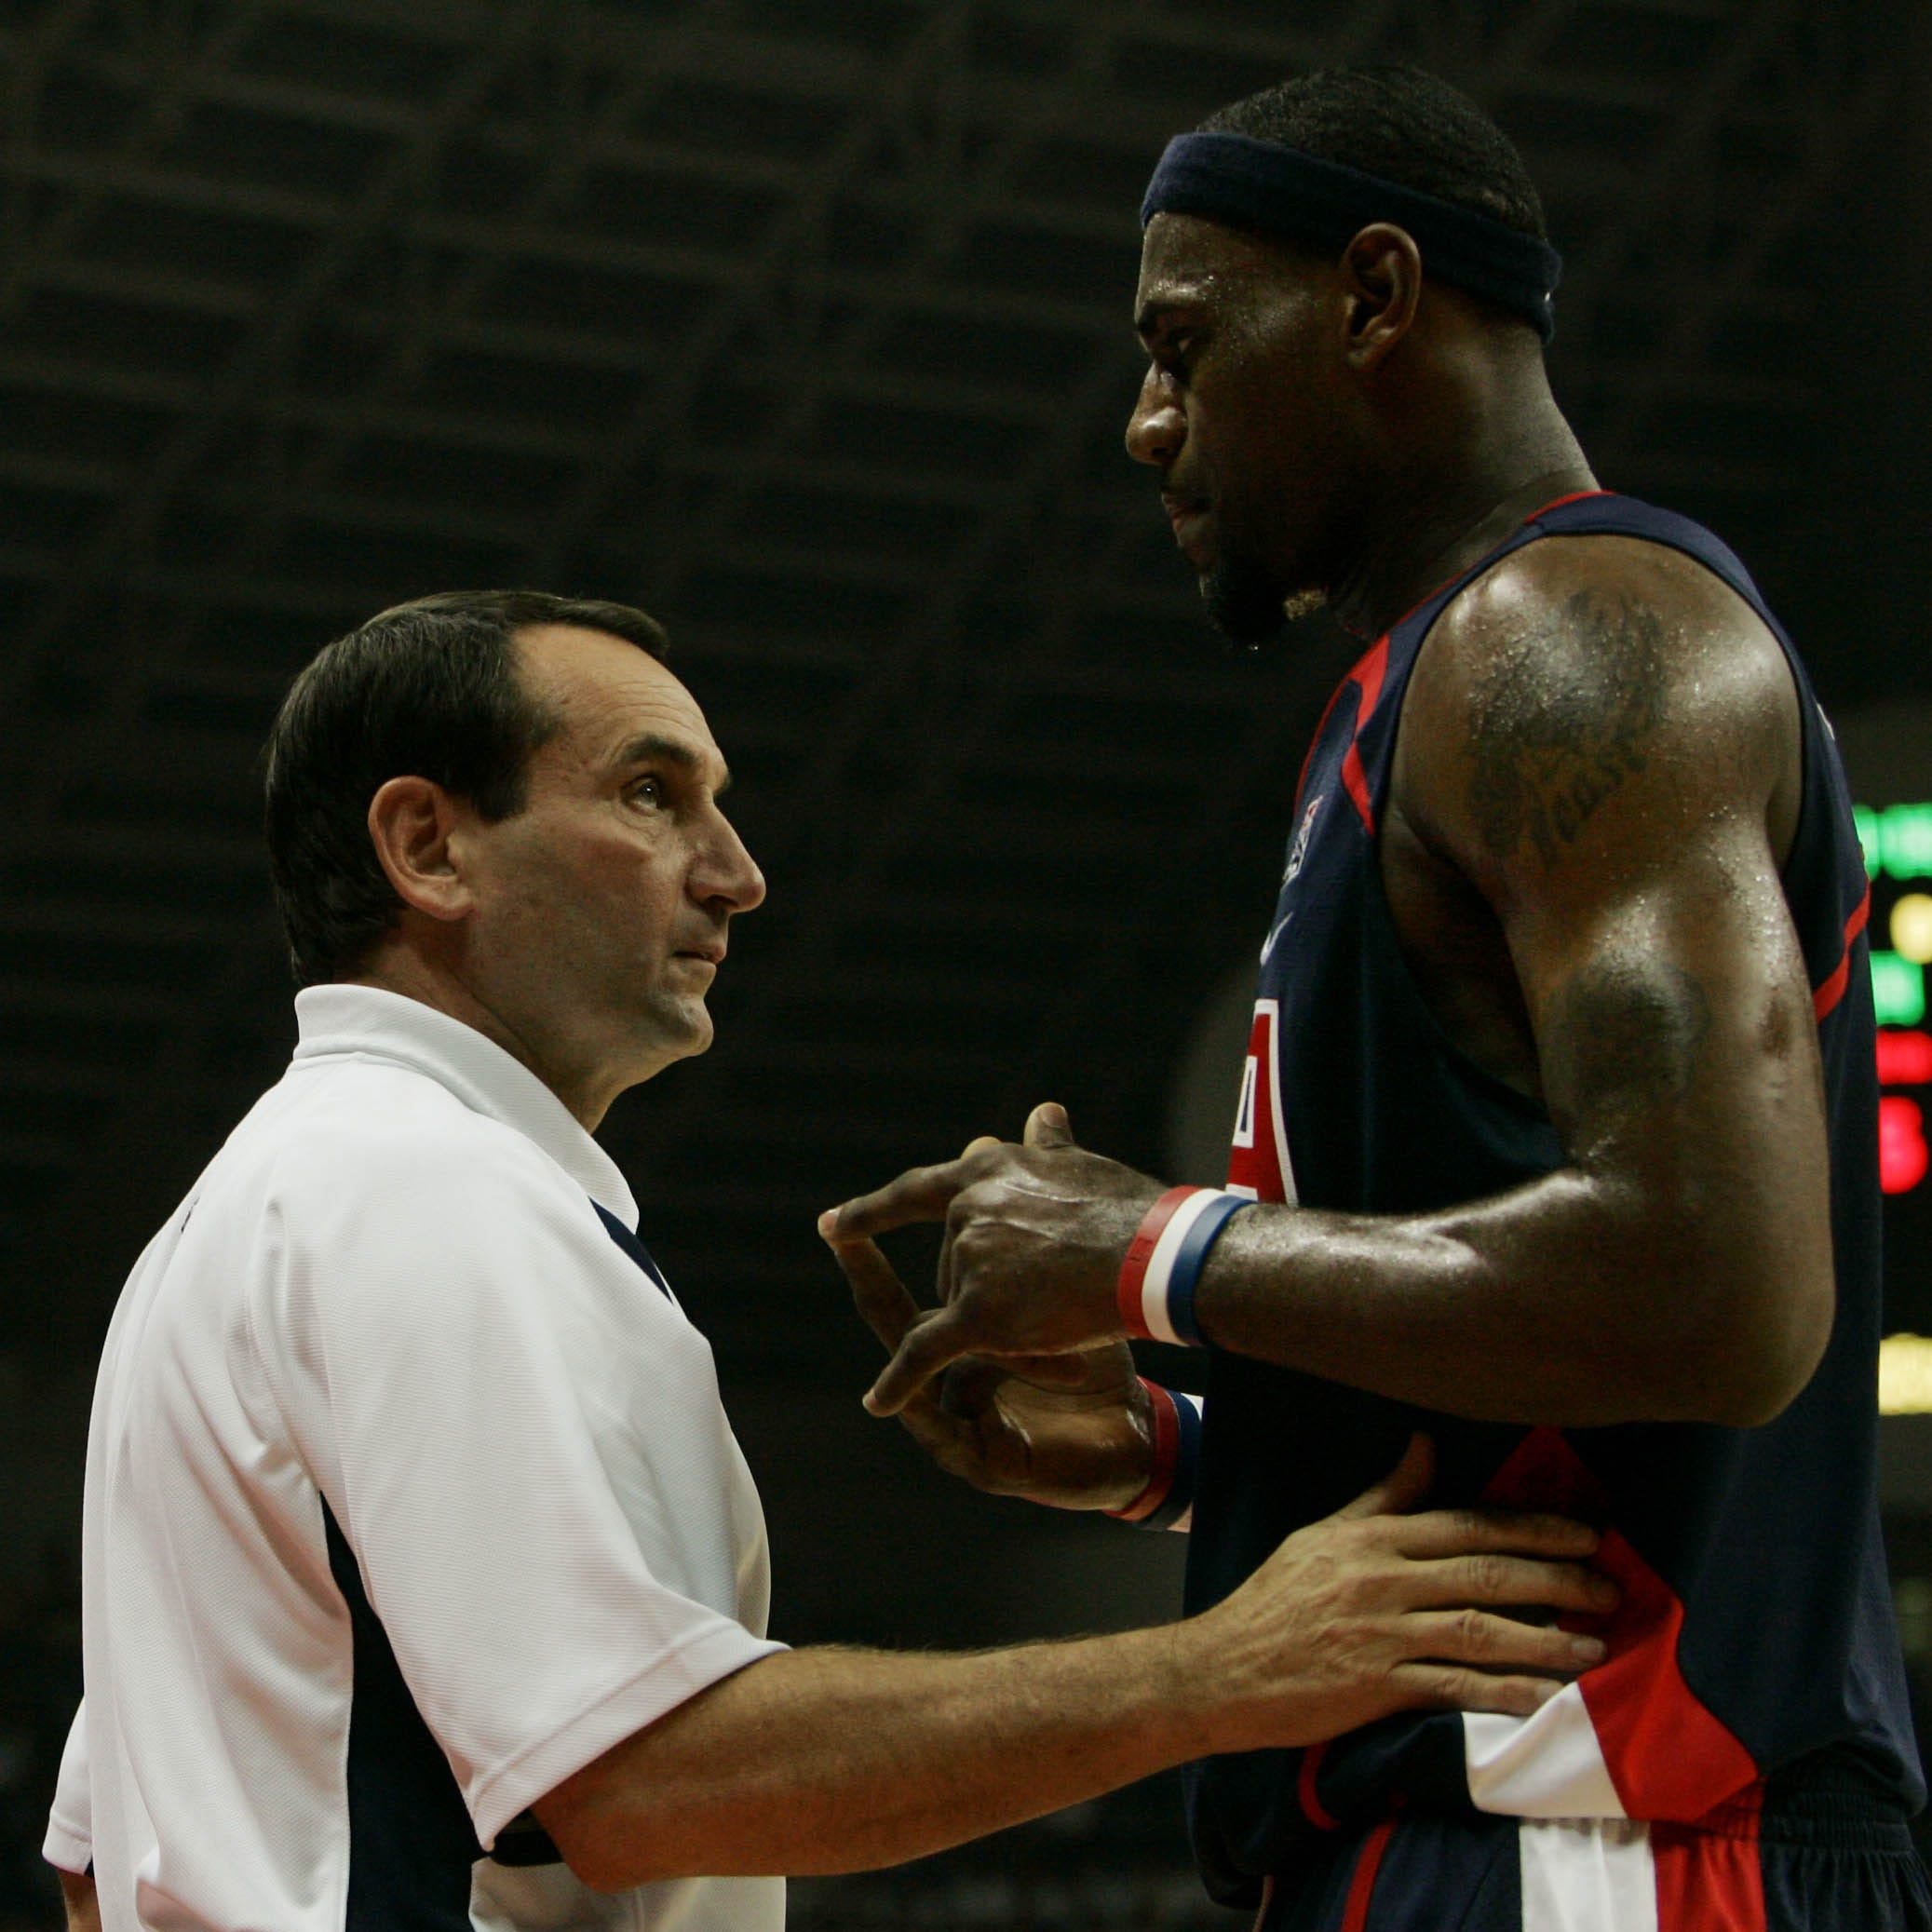 LeBron James chats with  U.S. coach Mike Krzyzewski during a match of China Basketball Challenge in 2006.